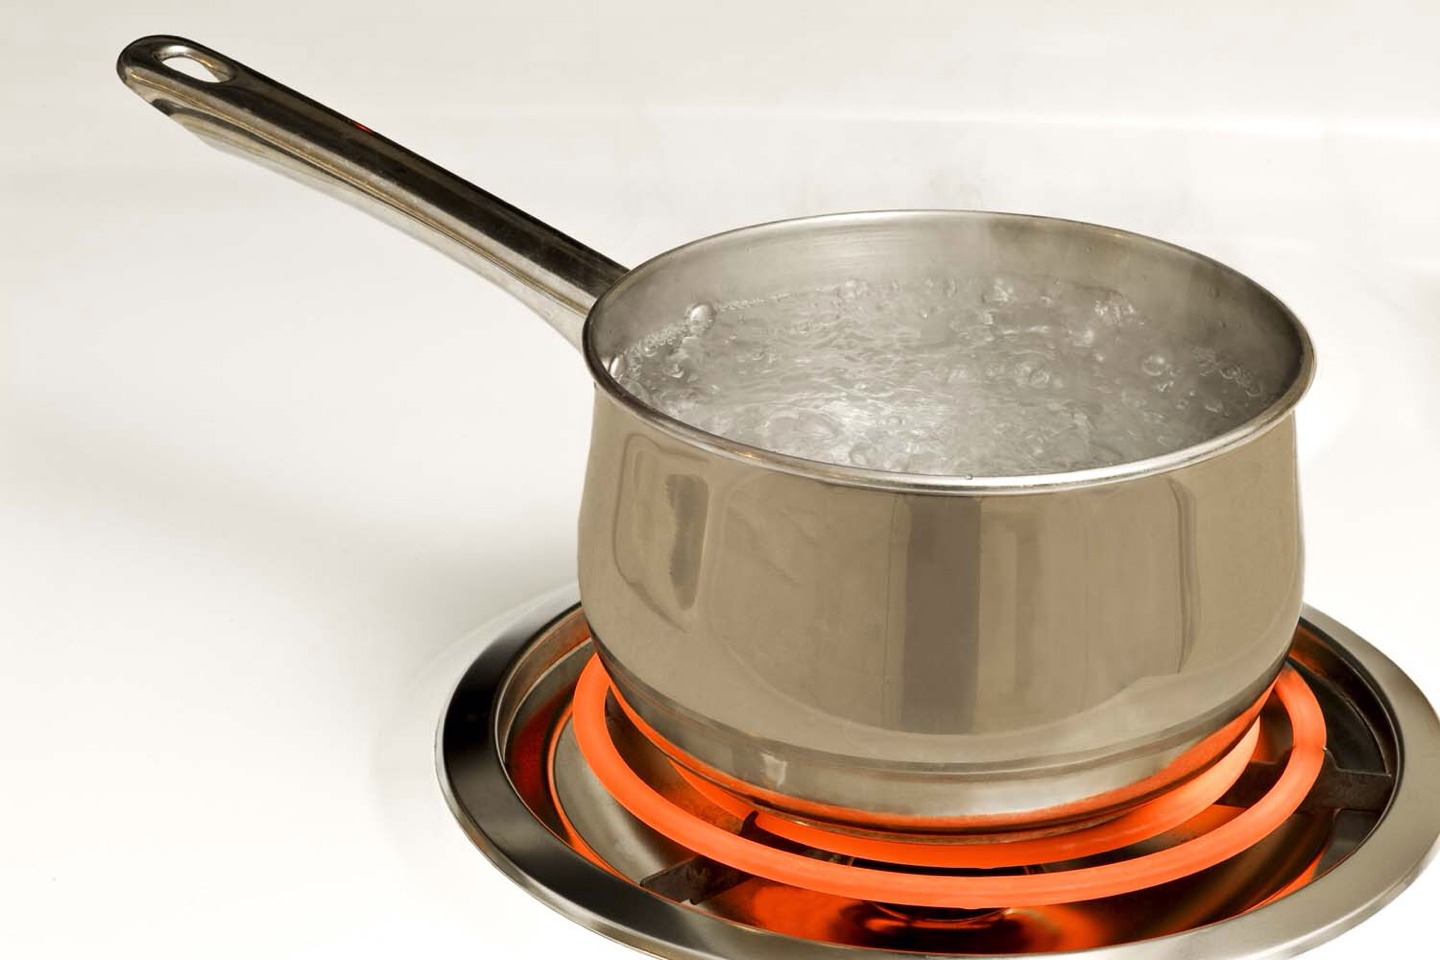 Boil some water and then pit a glass or metal bowl on top no plastic!!